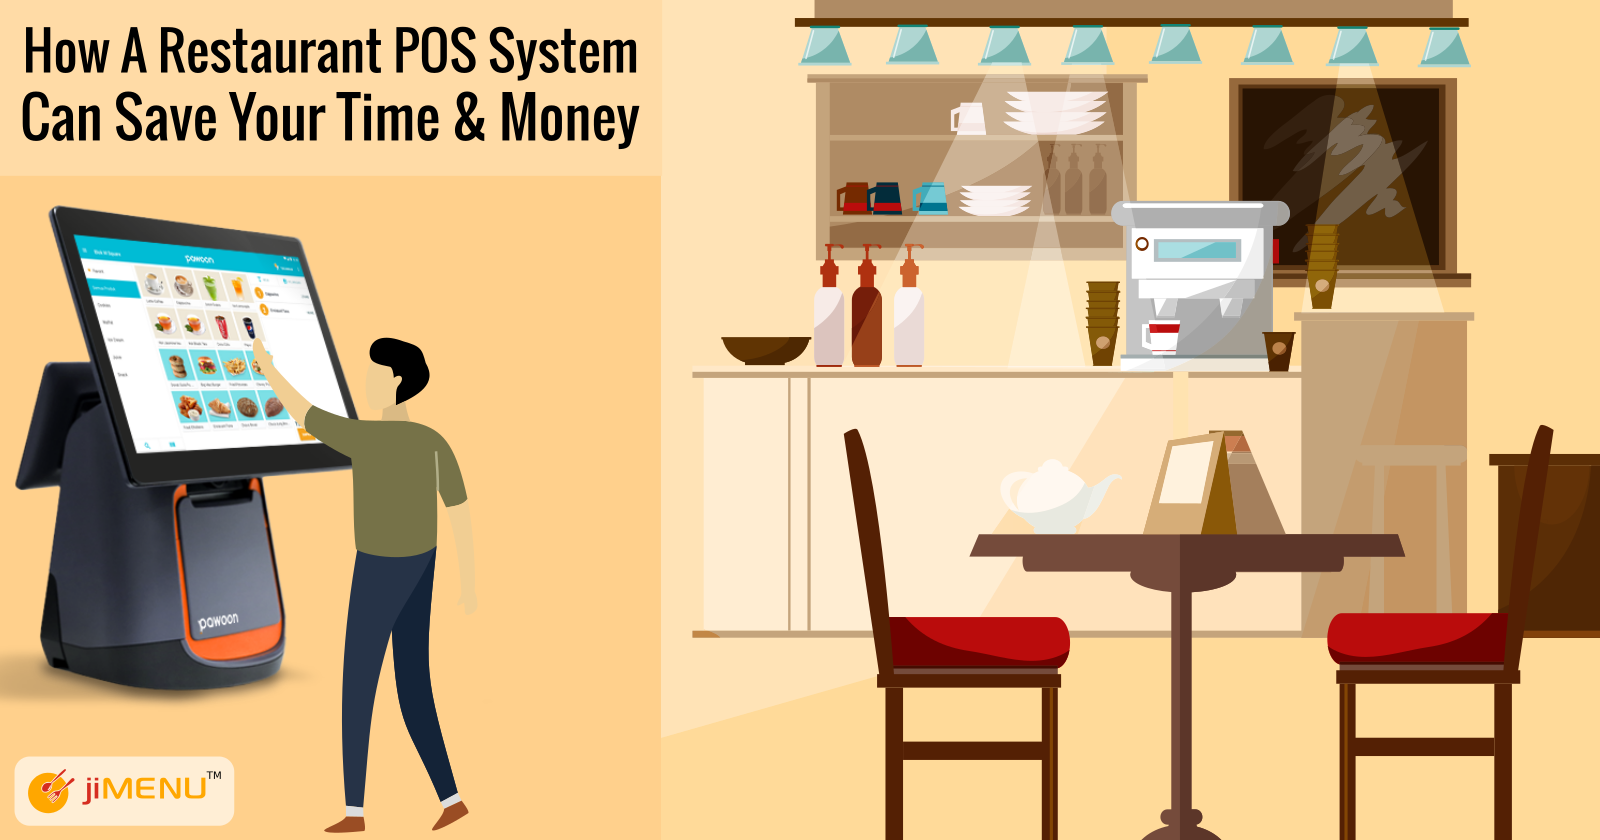 How a Restaurant POS System Can Save You Time & Money